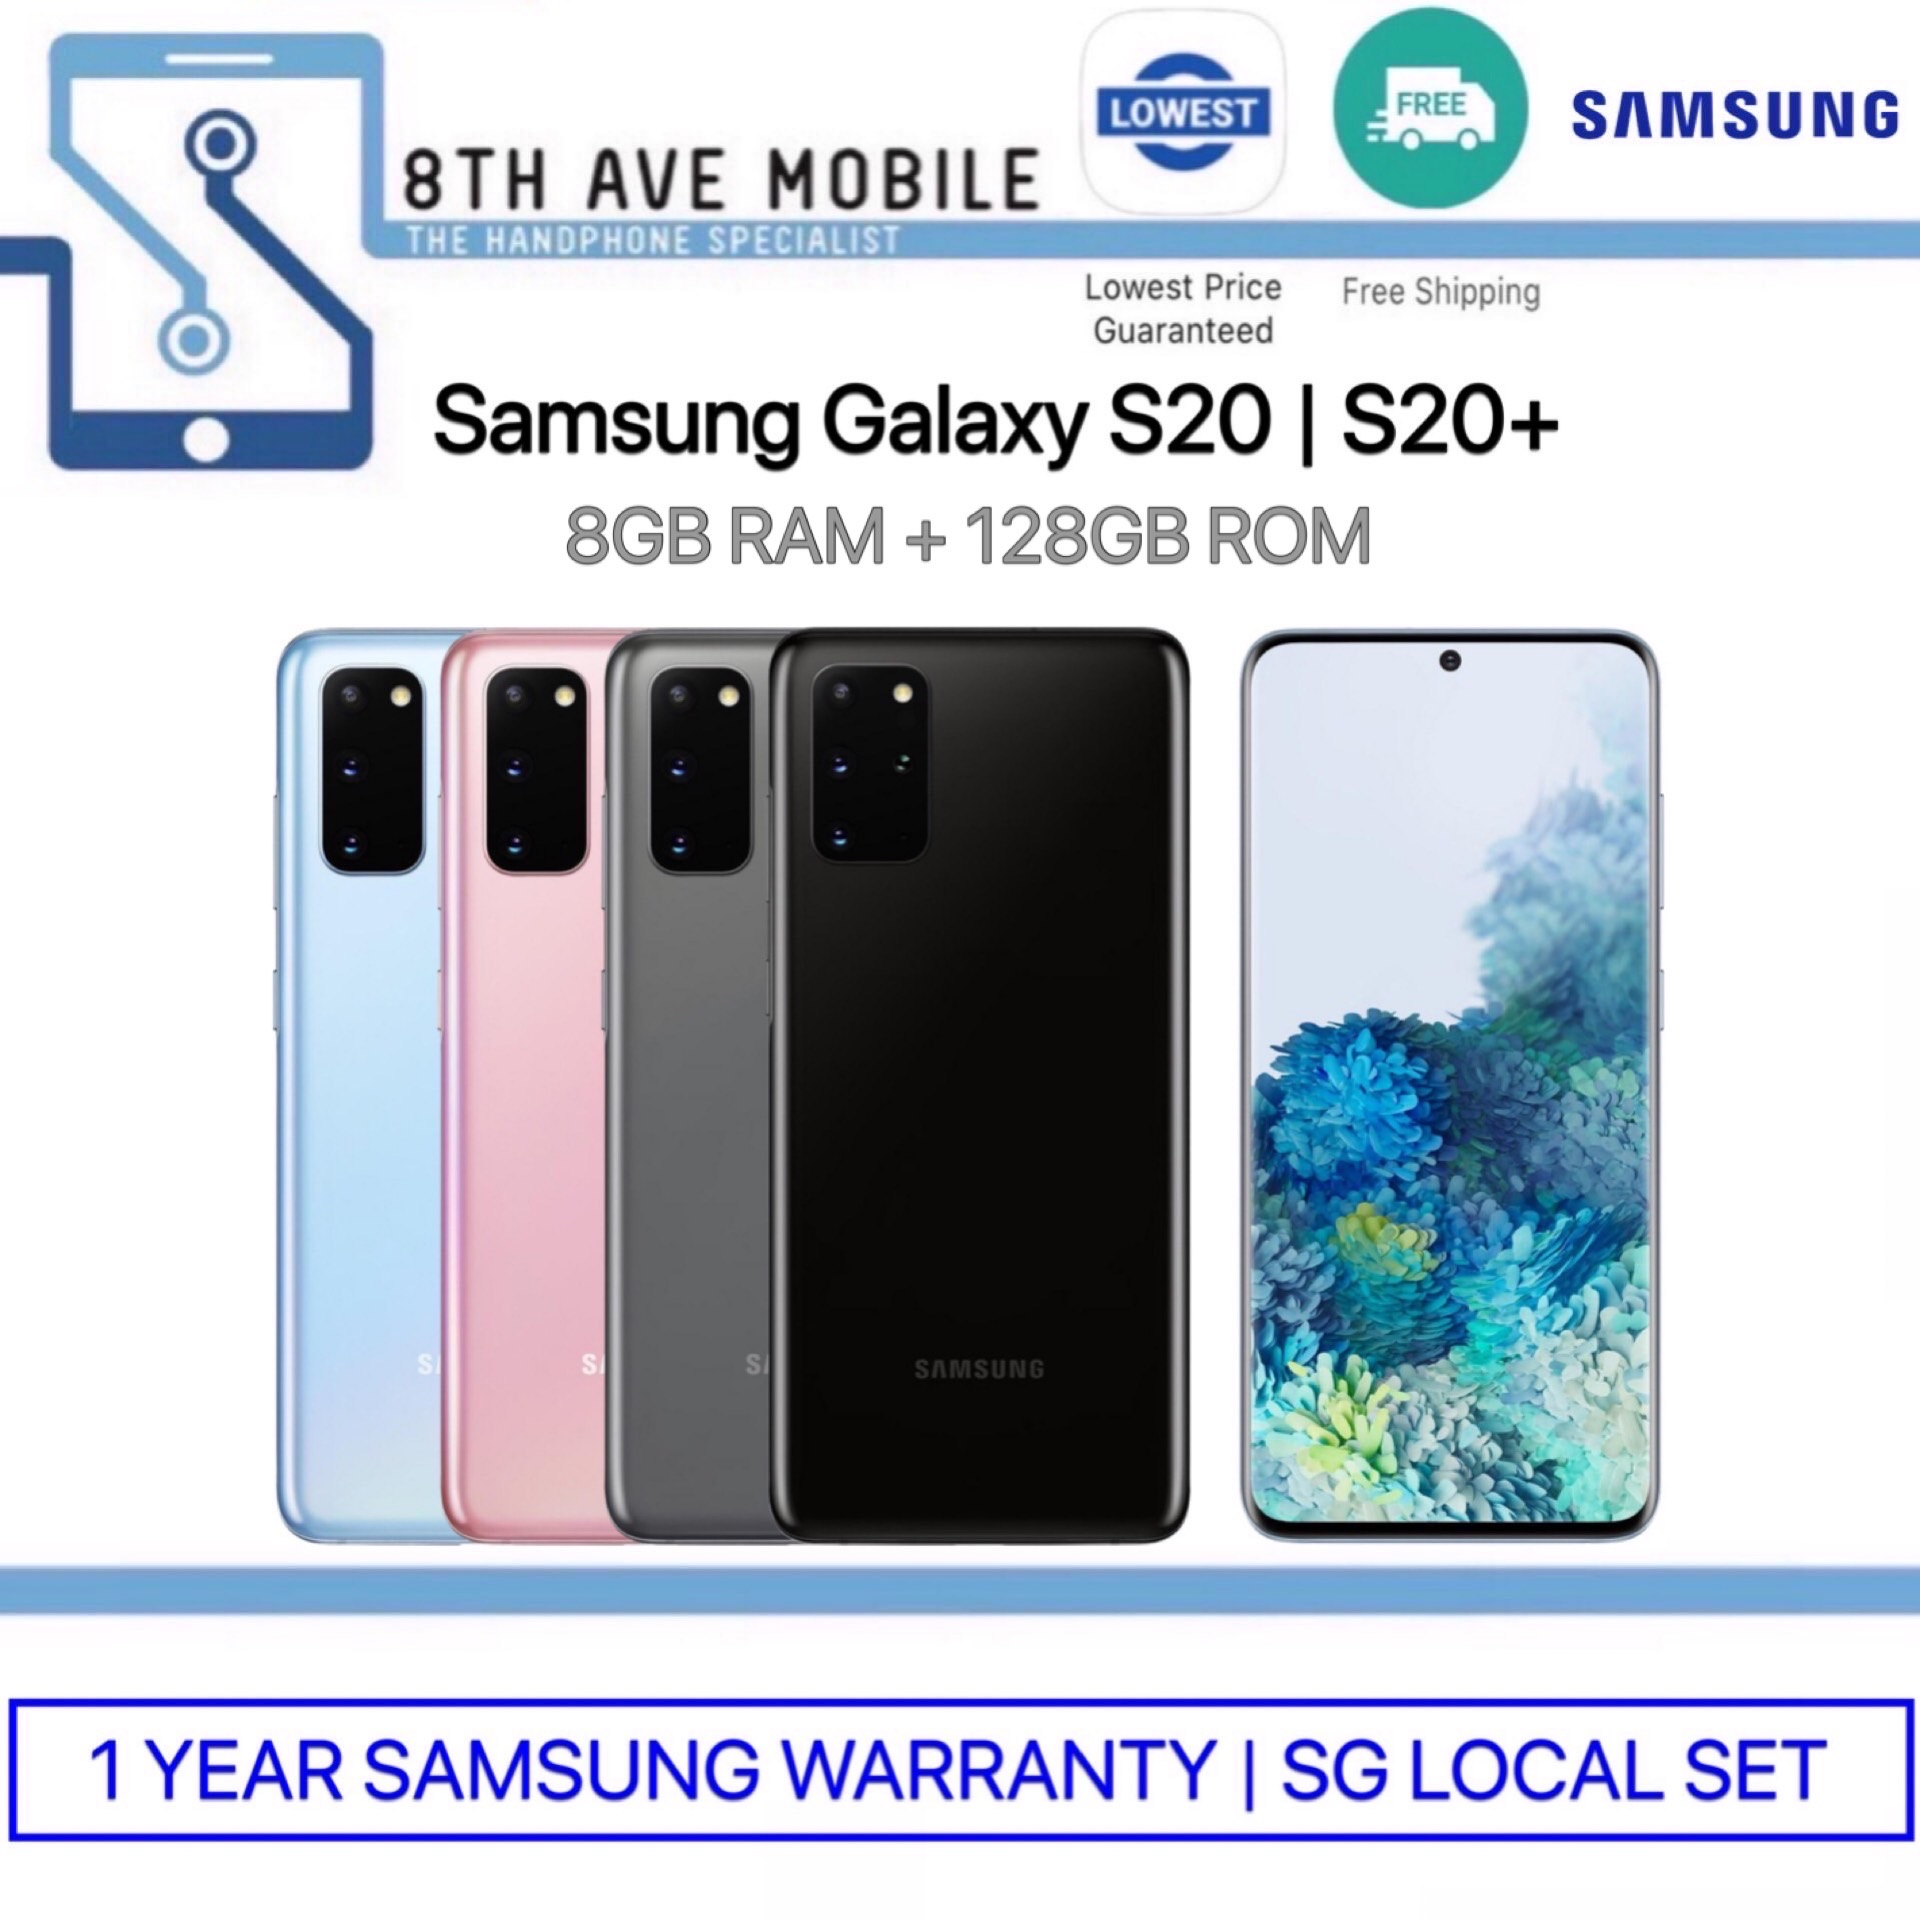 Samsung Phone Buy Samsung Phone At Best Price In Singapore Redmart Lazada Sg